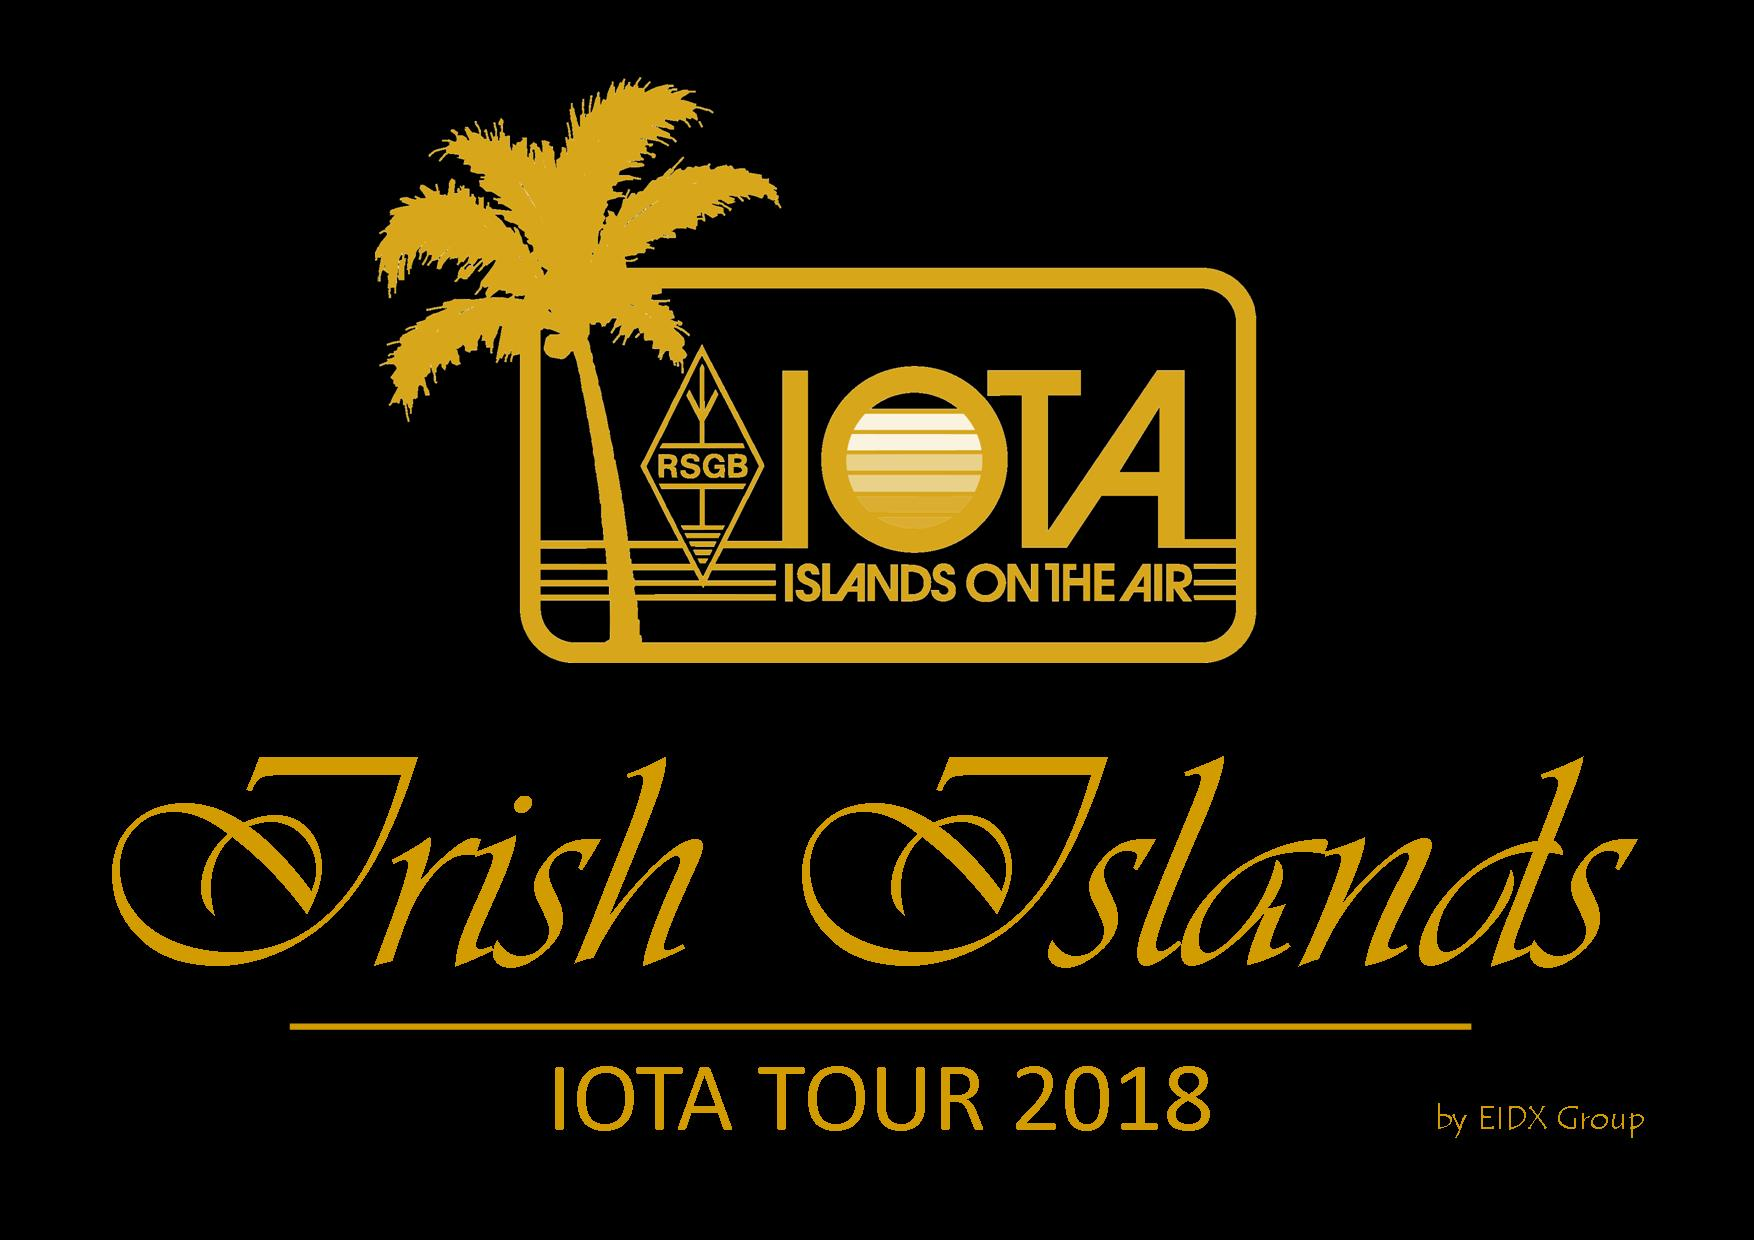 EJ0DXG, Irish Islands IOTA Tour 2018